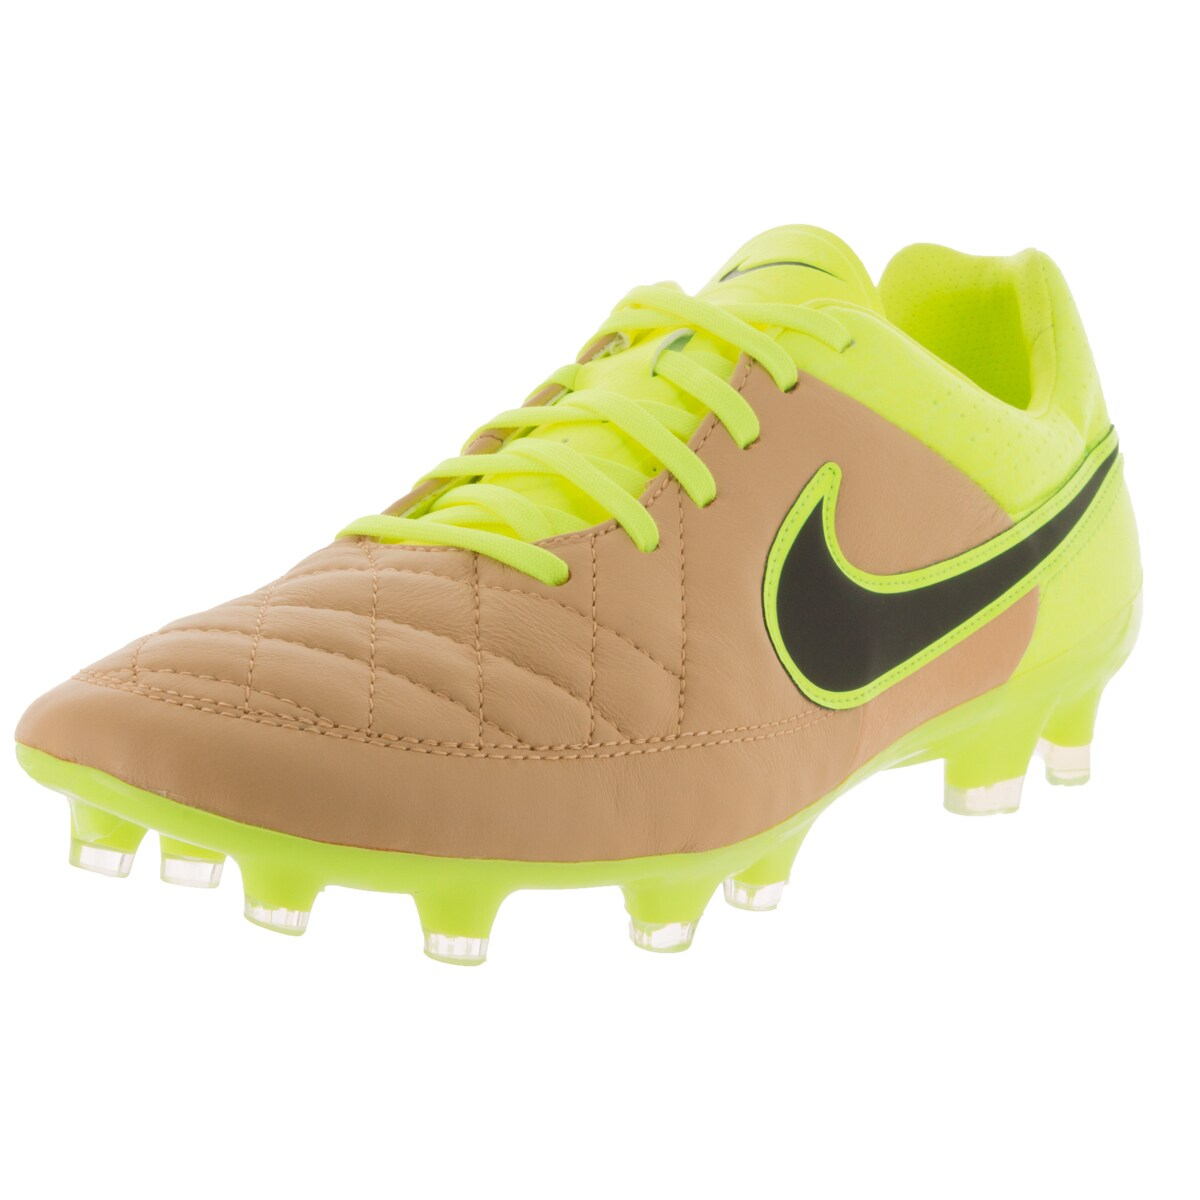 Nike Men's Tiempo Legacy FG Yellow/Tan Leather/Synthetic ...